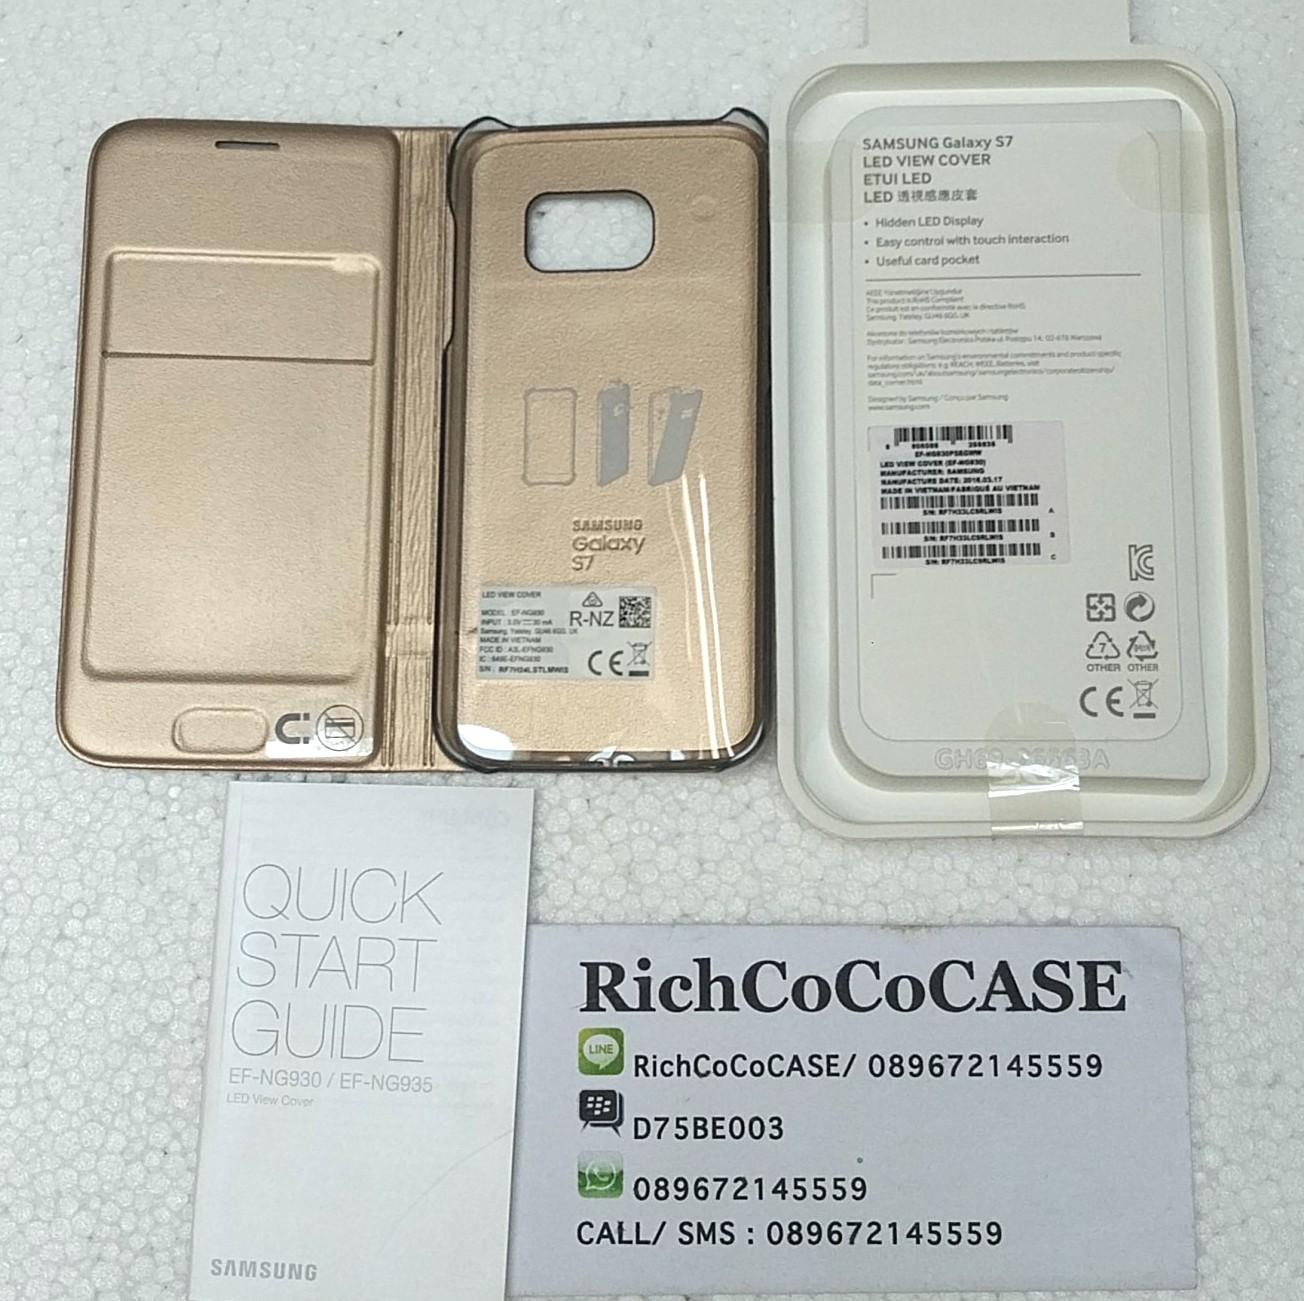 Galaxy S7 Flat LED View Cover Original Samsung - Gold